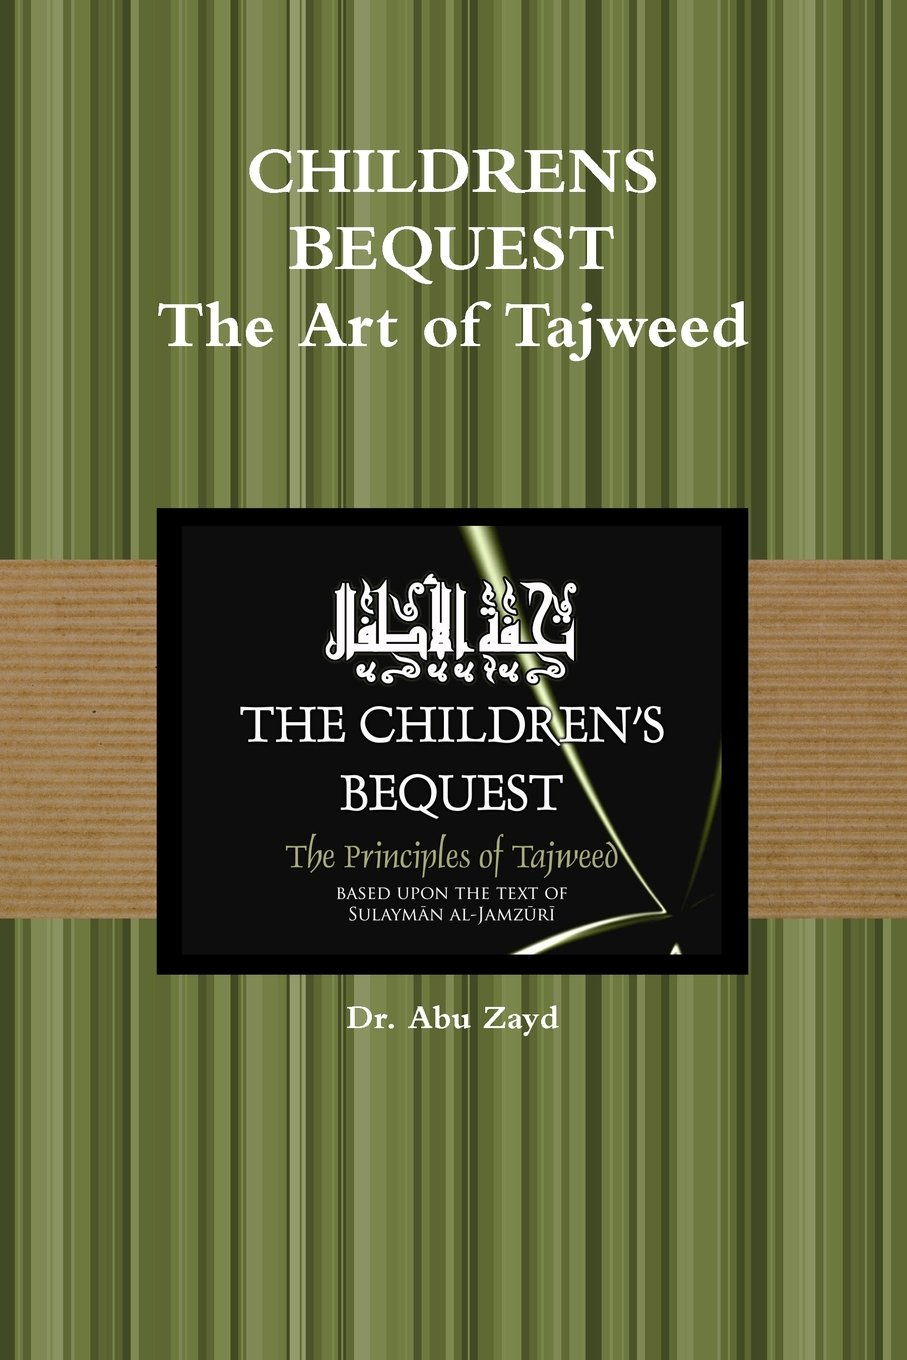 Childrens Bequest: The Art of Tajweed